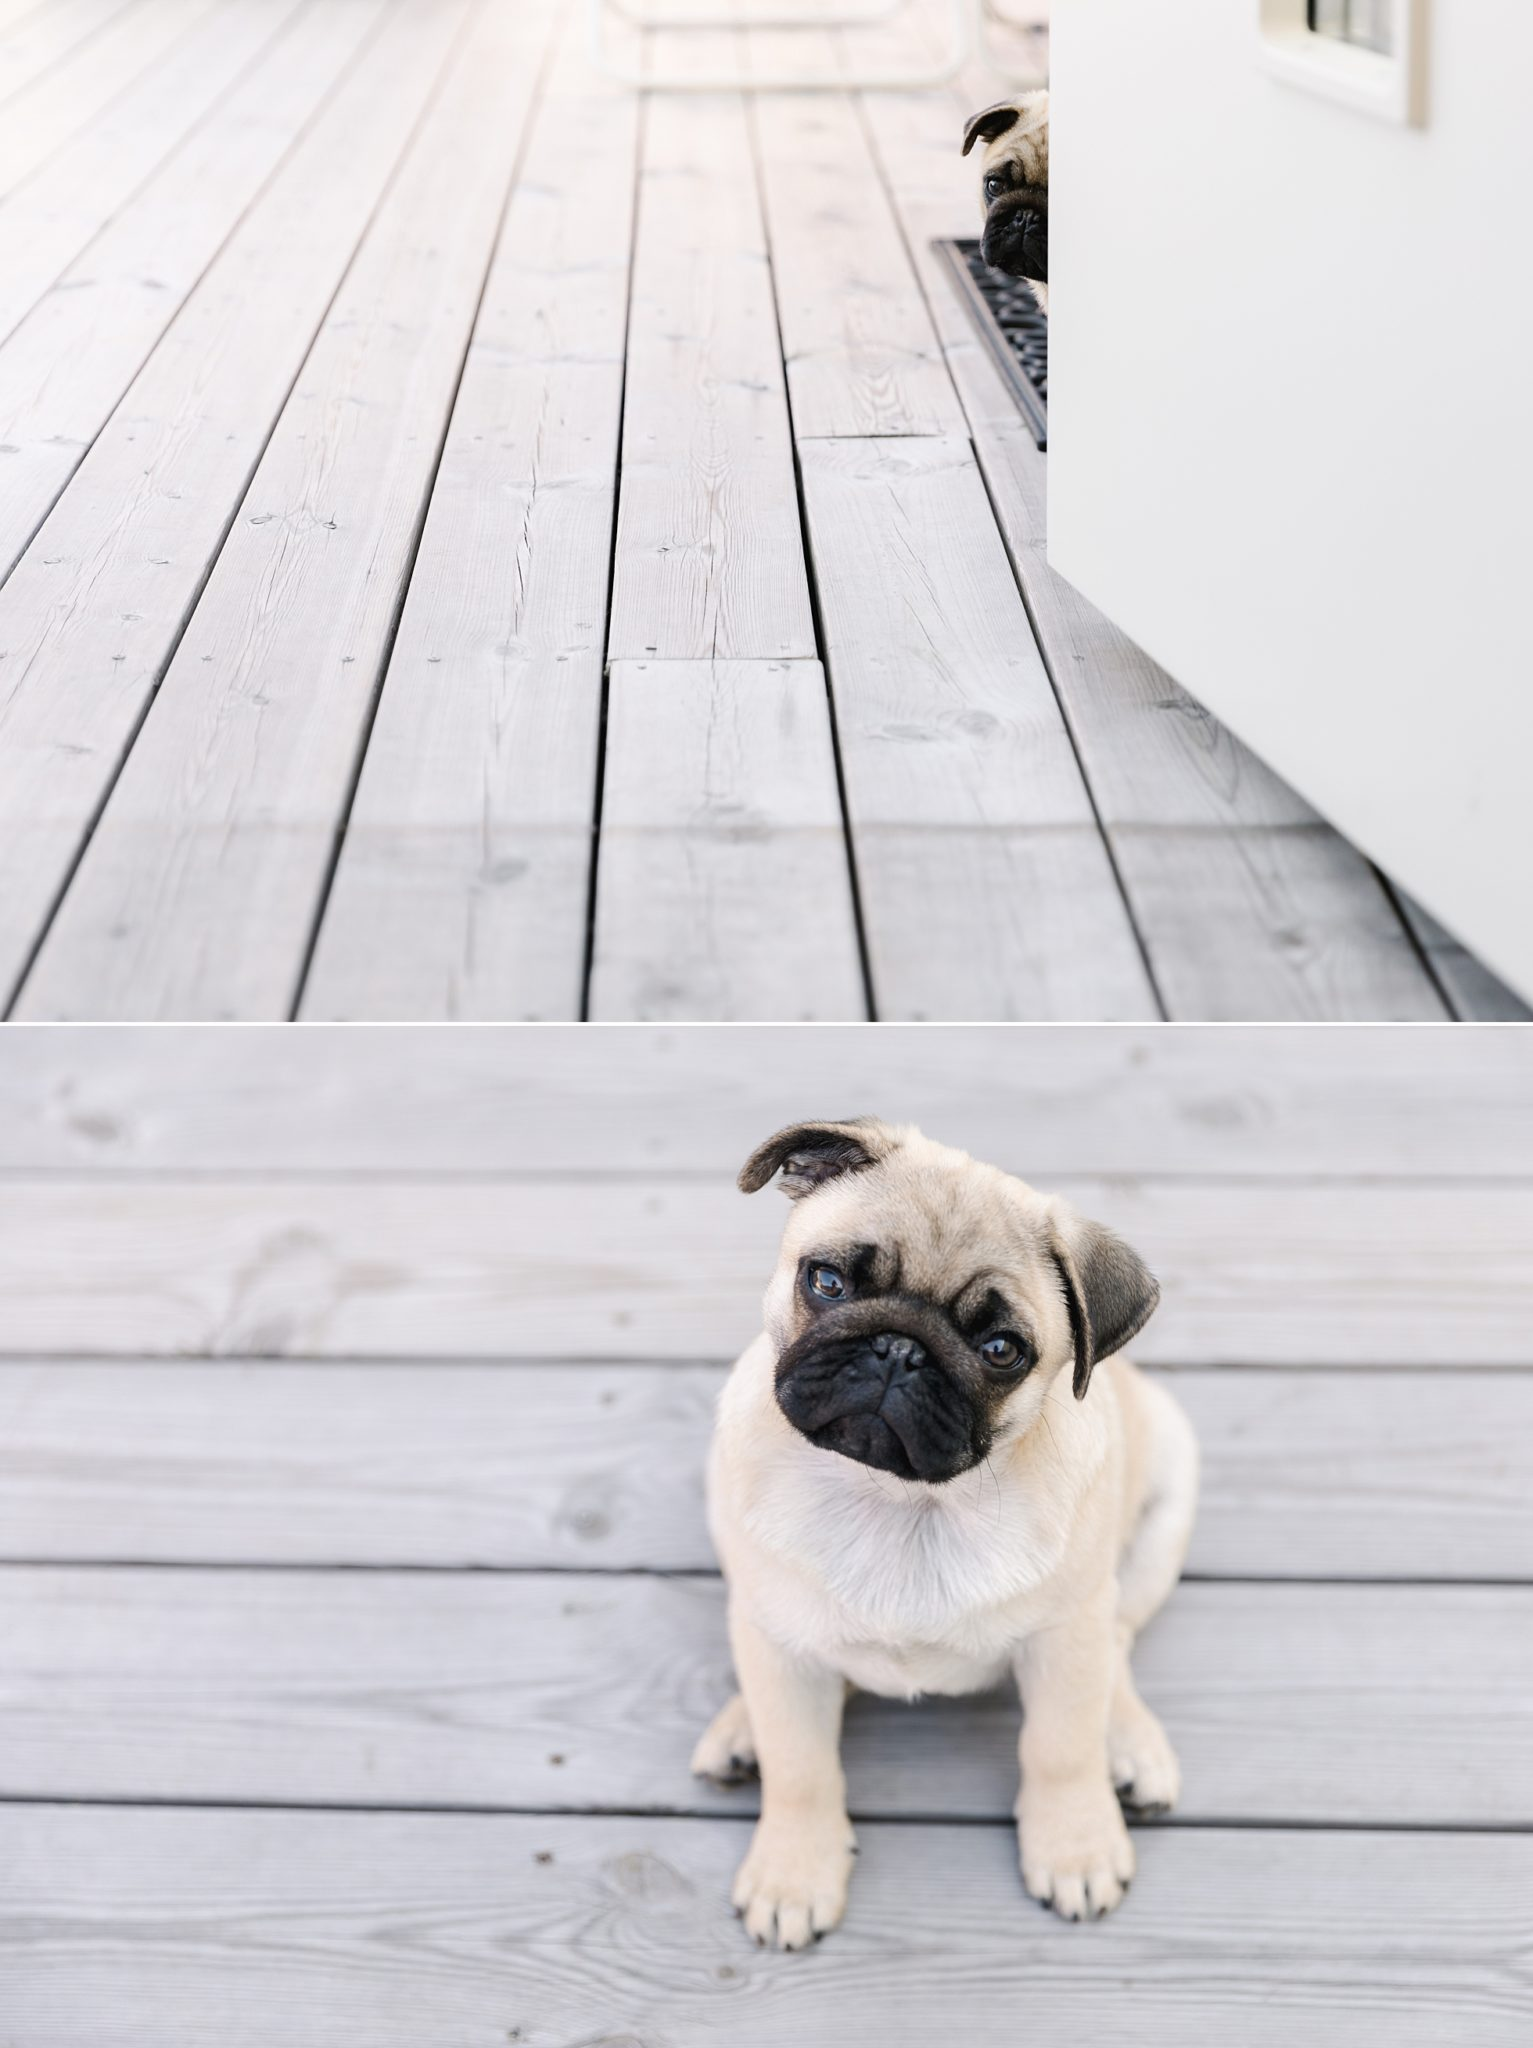 A collage of a cute pug puppy hiding behind a door and sitting